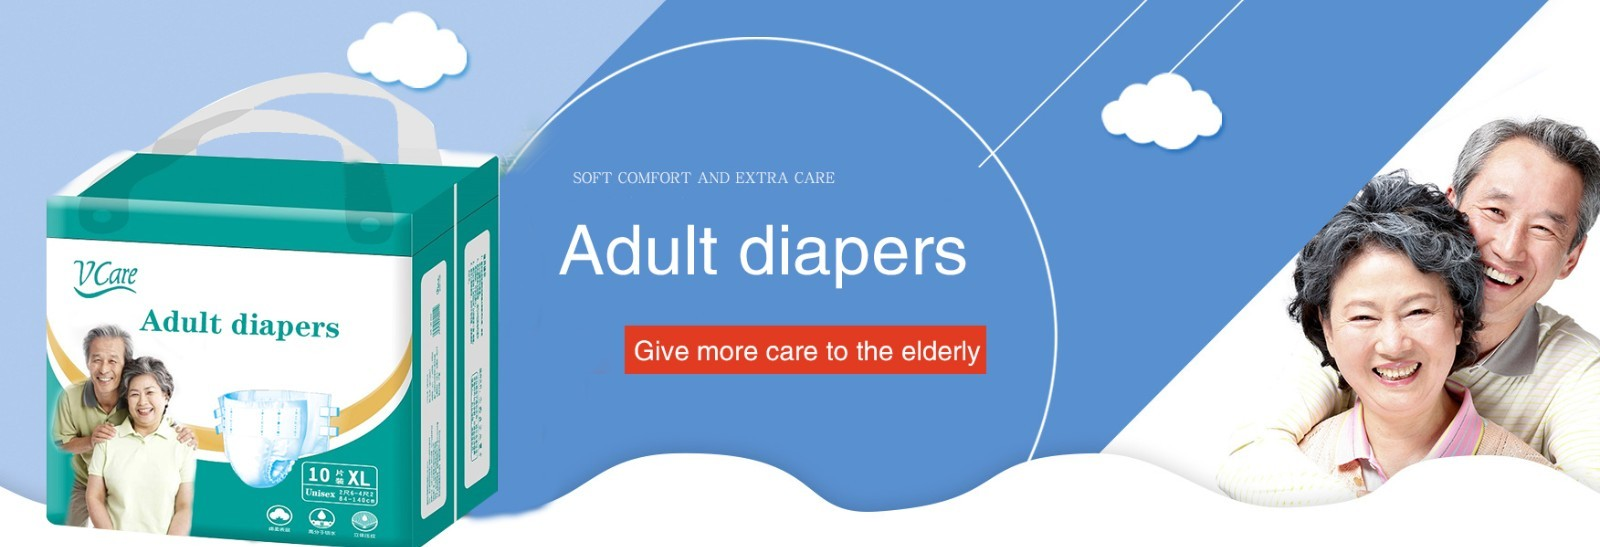 Vcare Comfortable Adult Diapers - Making Live More Easy